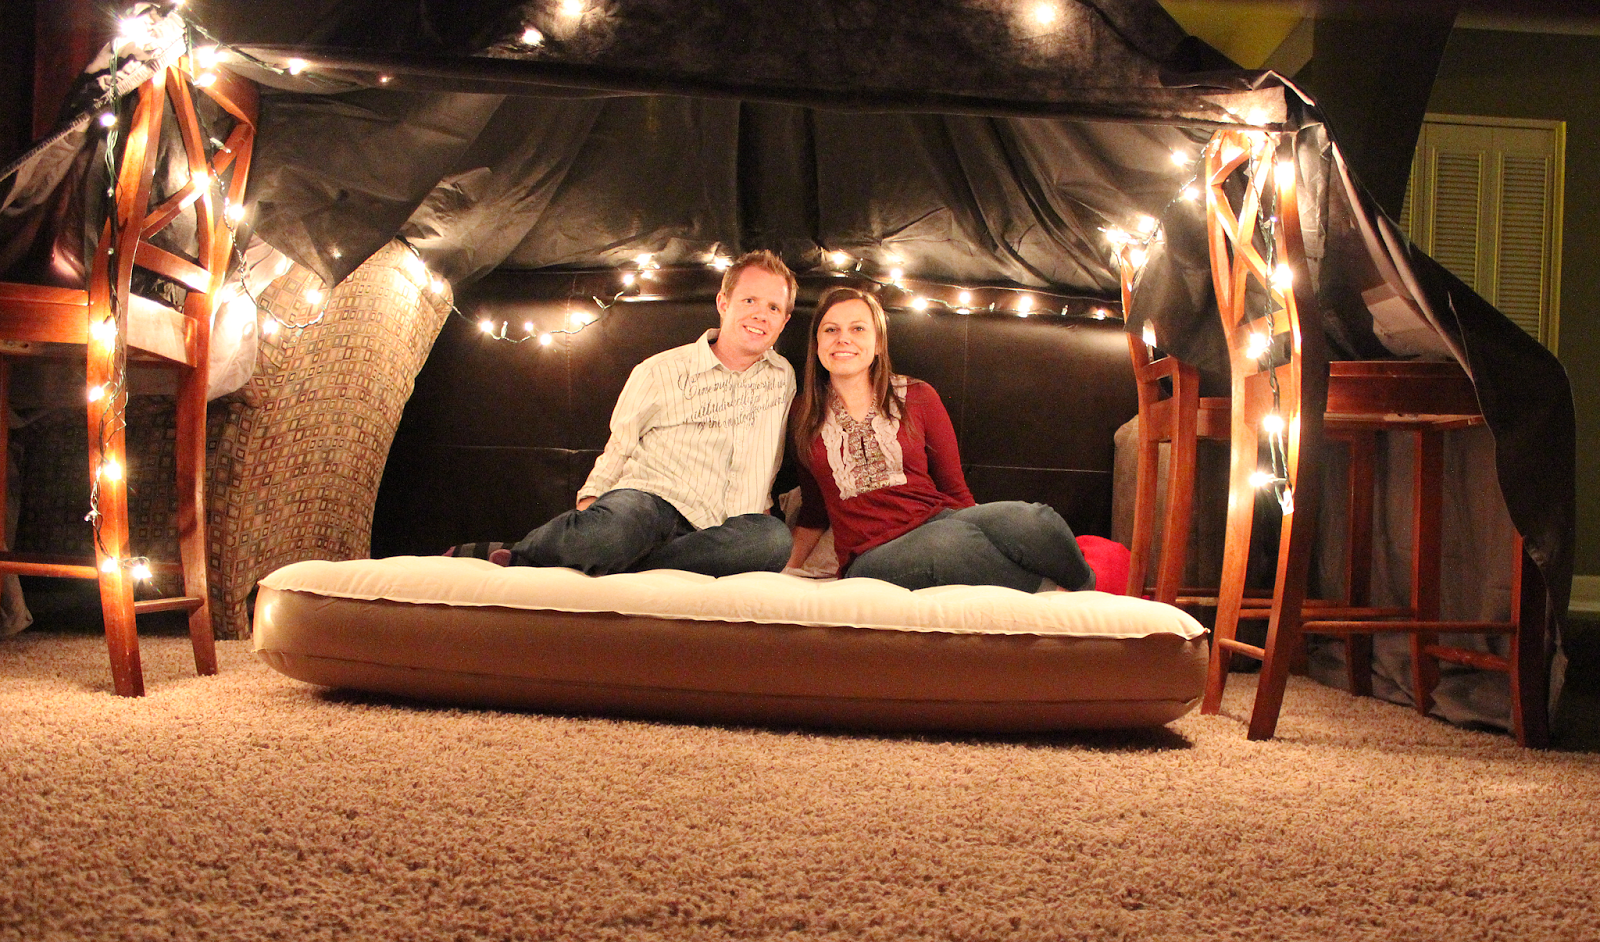 Fort ideas at home